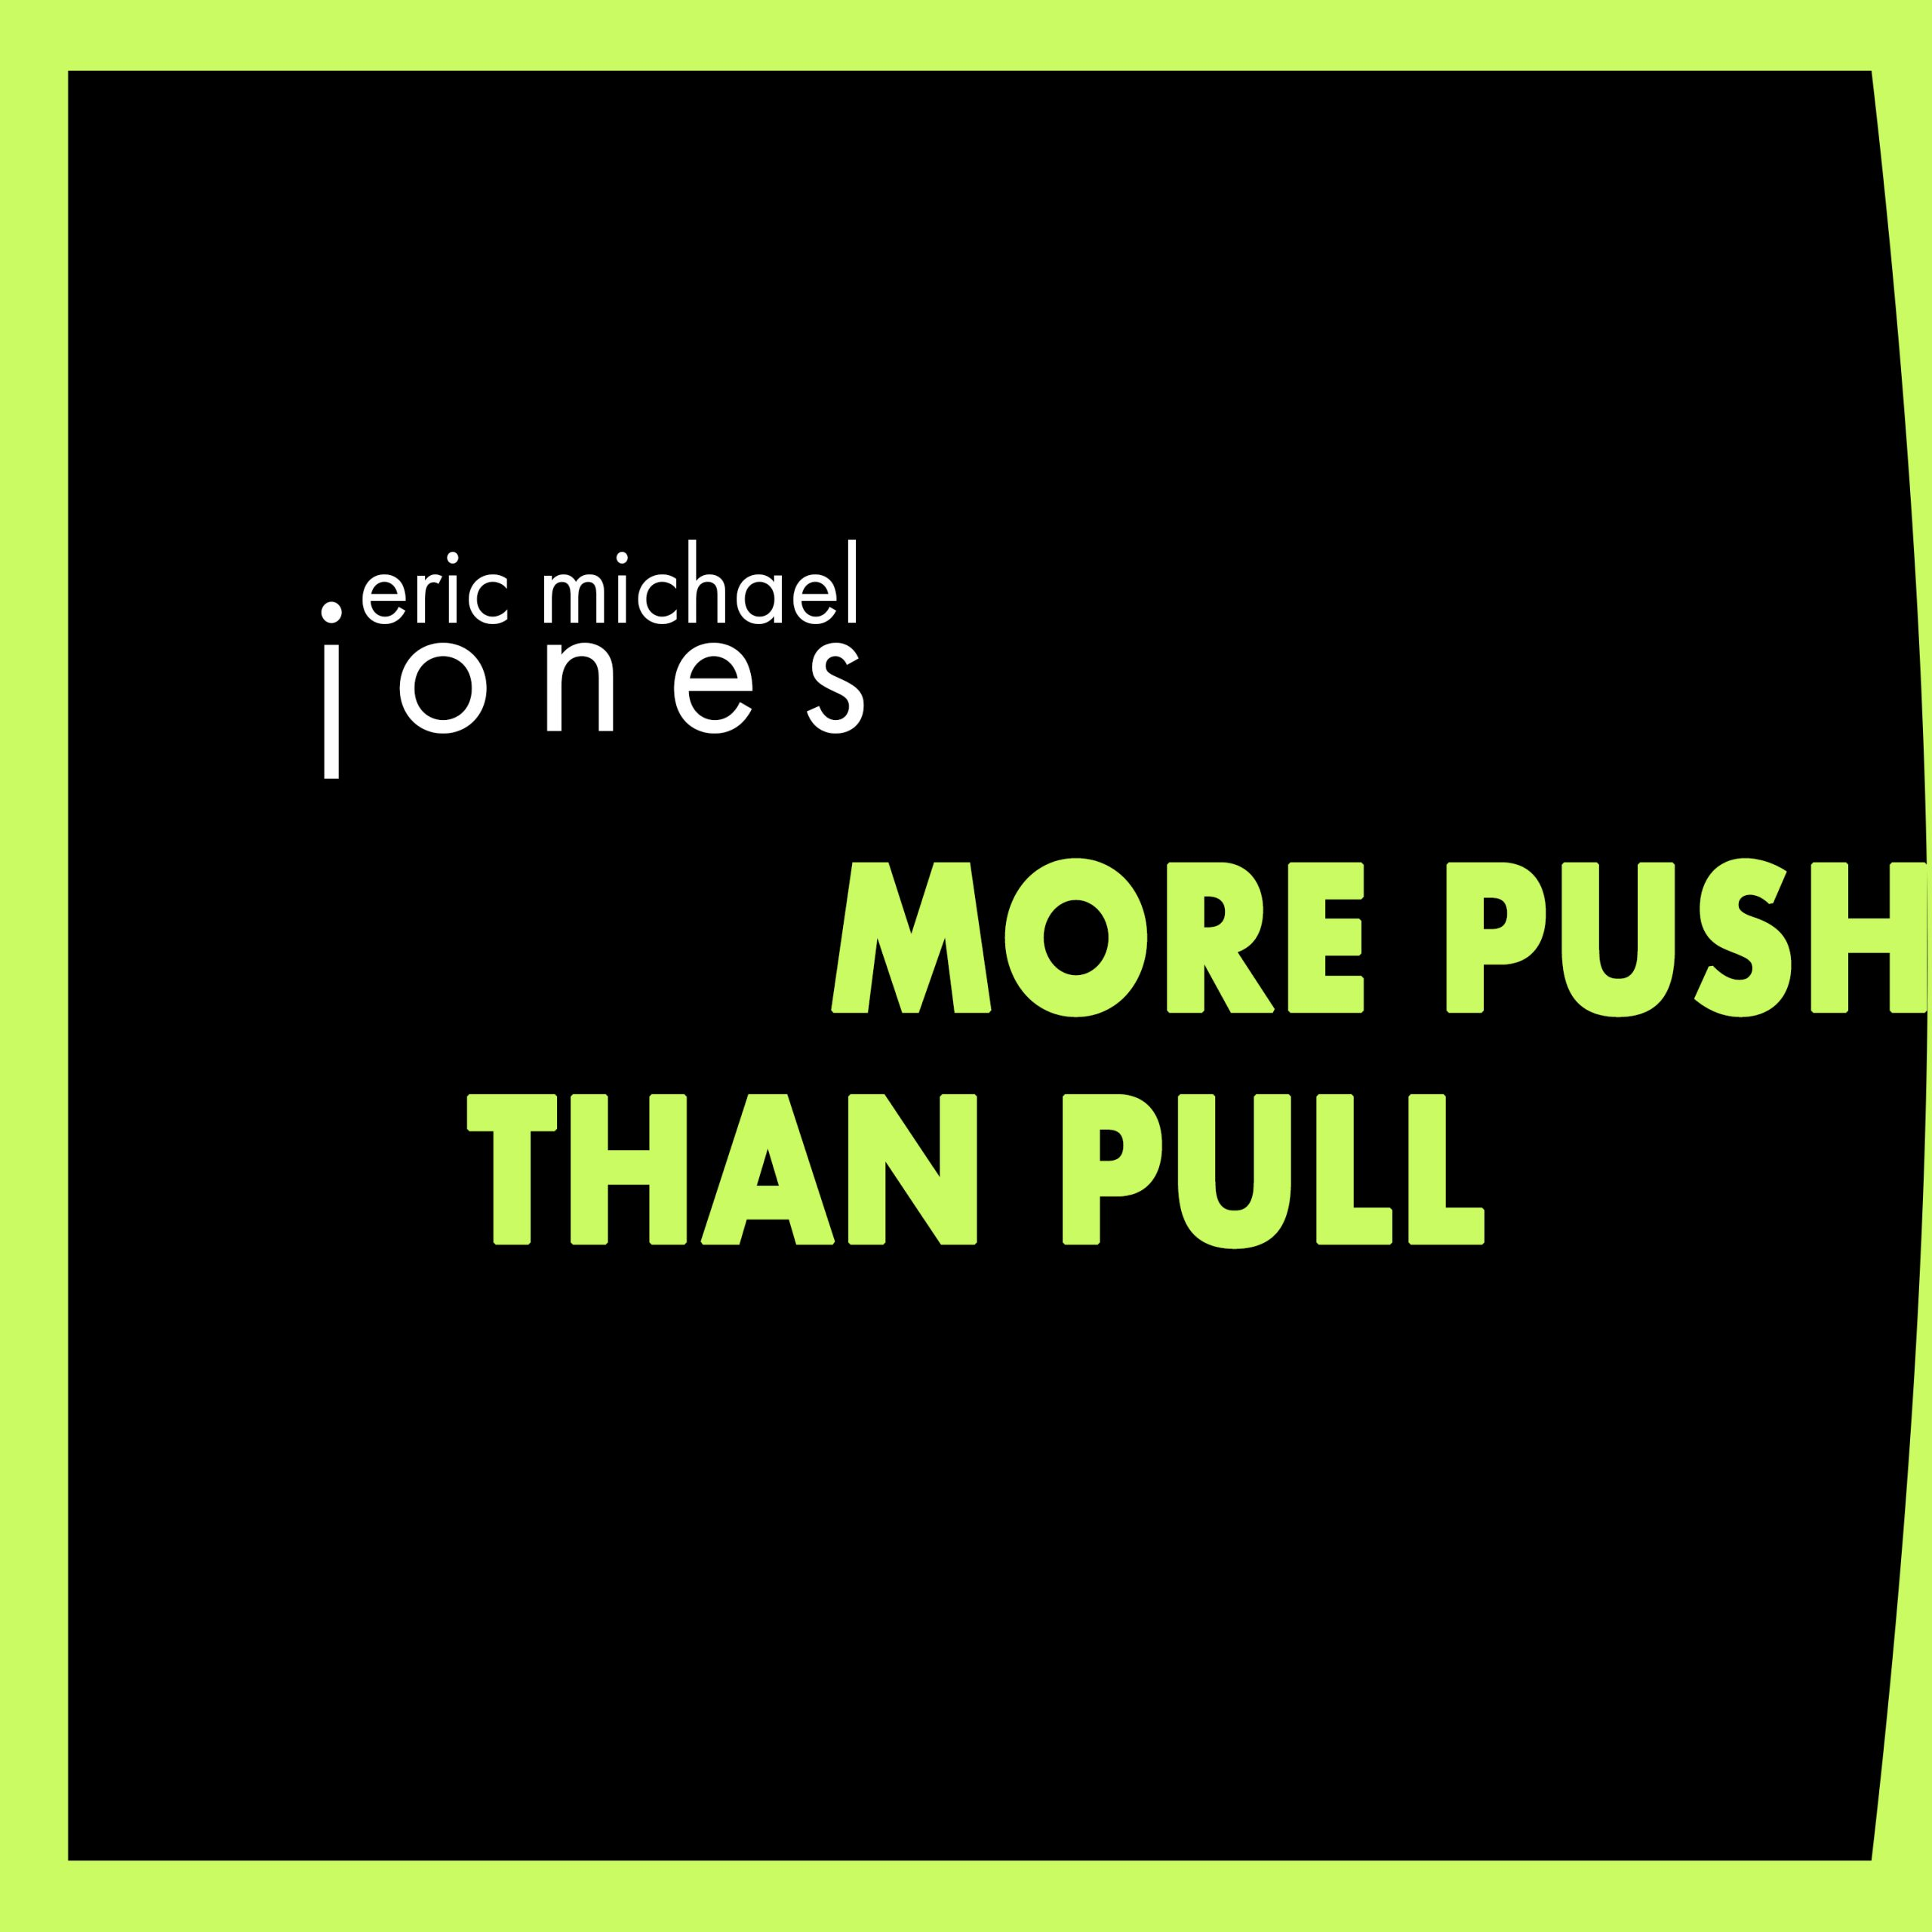 Cover art for More Push Than Pull, showing the words in large graphic font